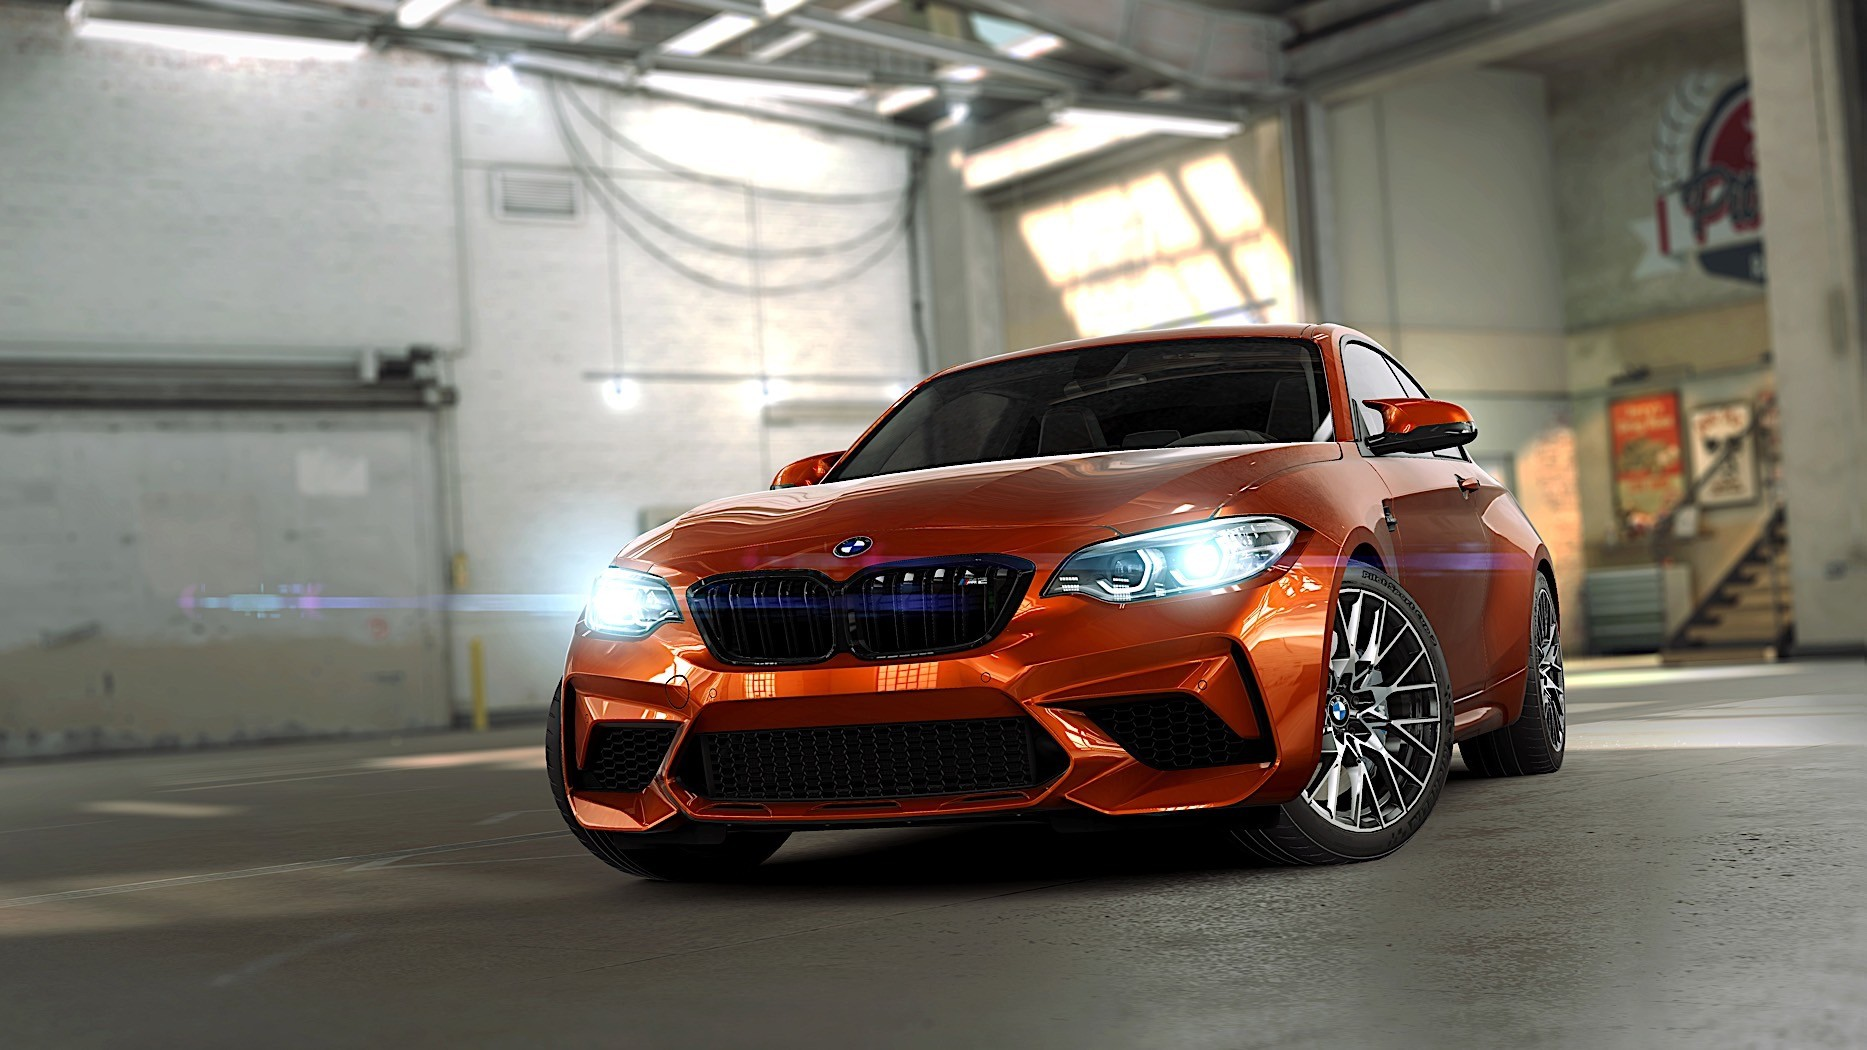 Bmw Car Wallpaper For Mobile Csr Racing 2 Mobile Game Now Features The Bmw M2